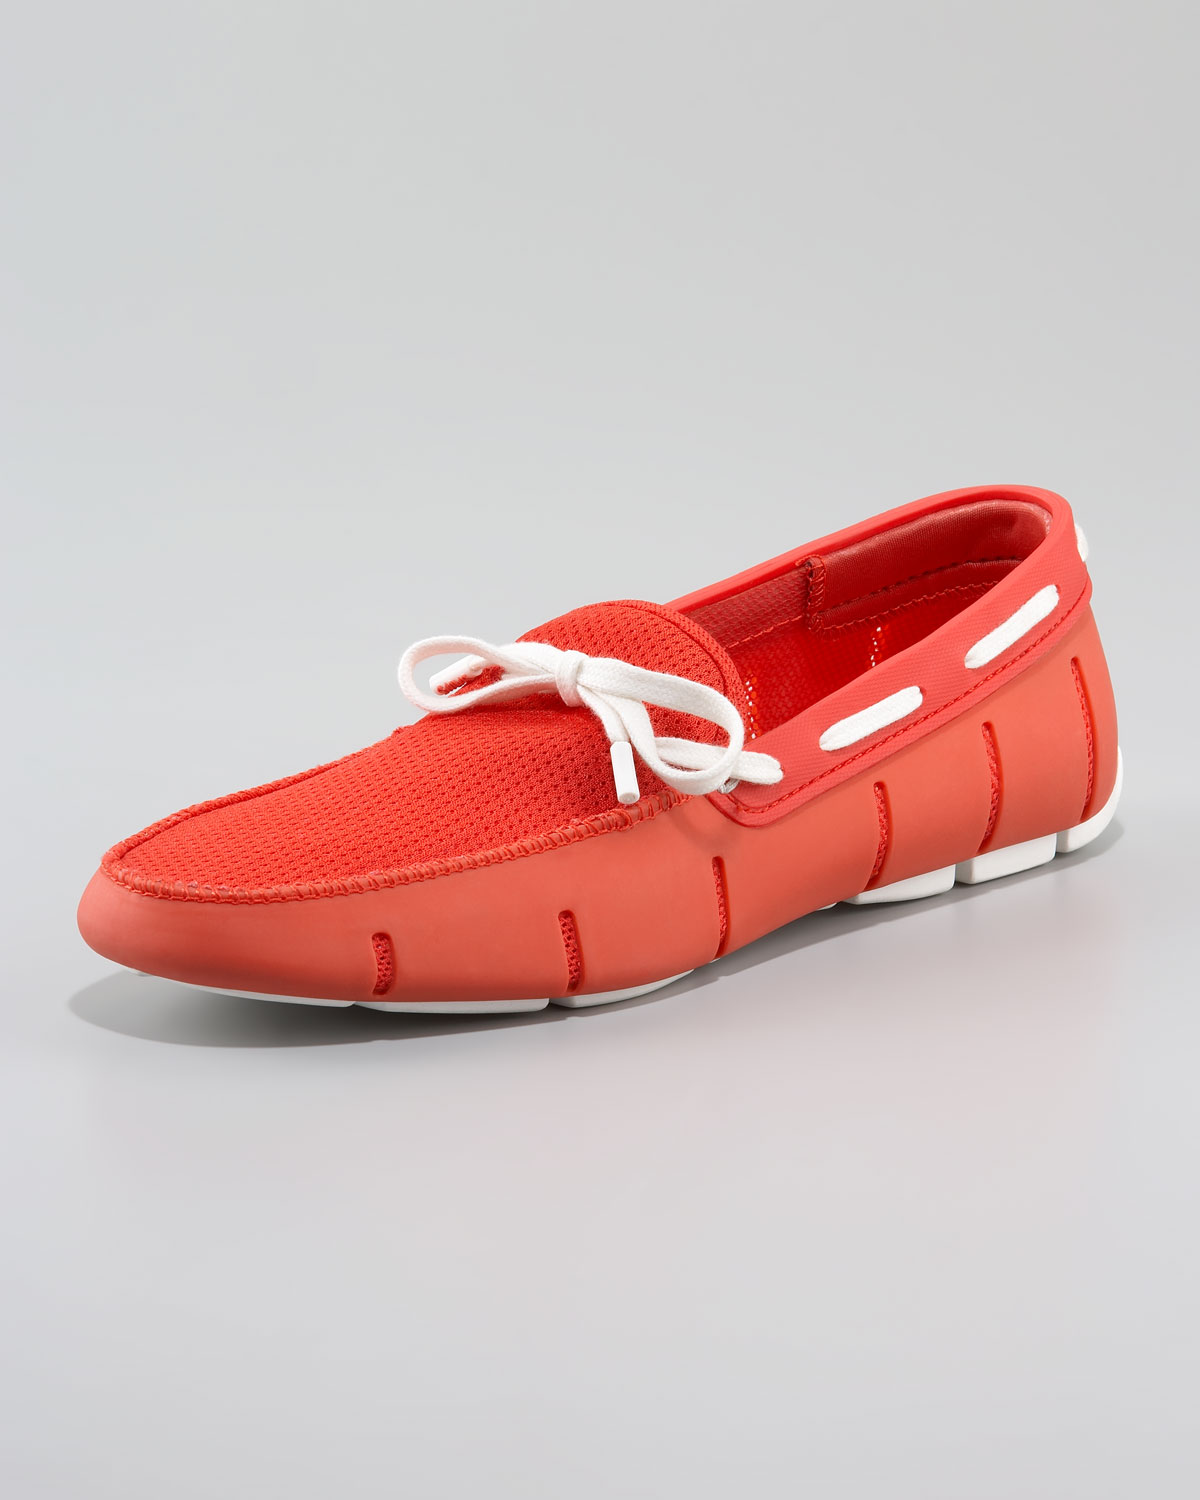 76f1327837f97 Swims Lace-up Rubber Loafer, Red/white in Red for Men - Lyst